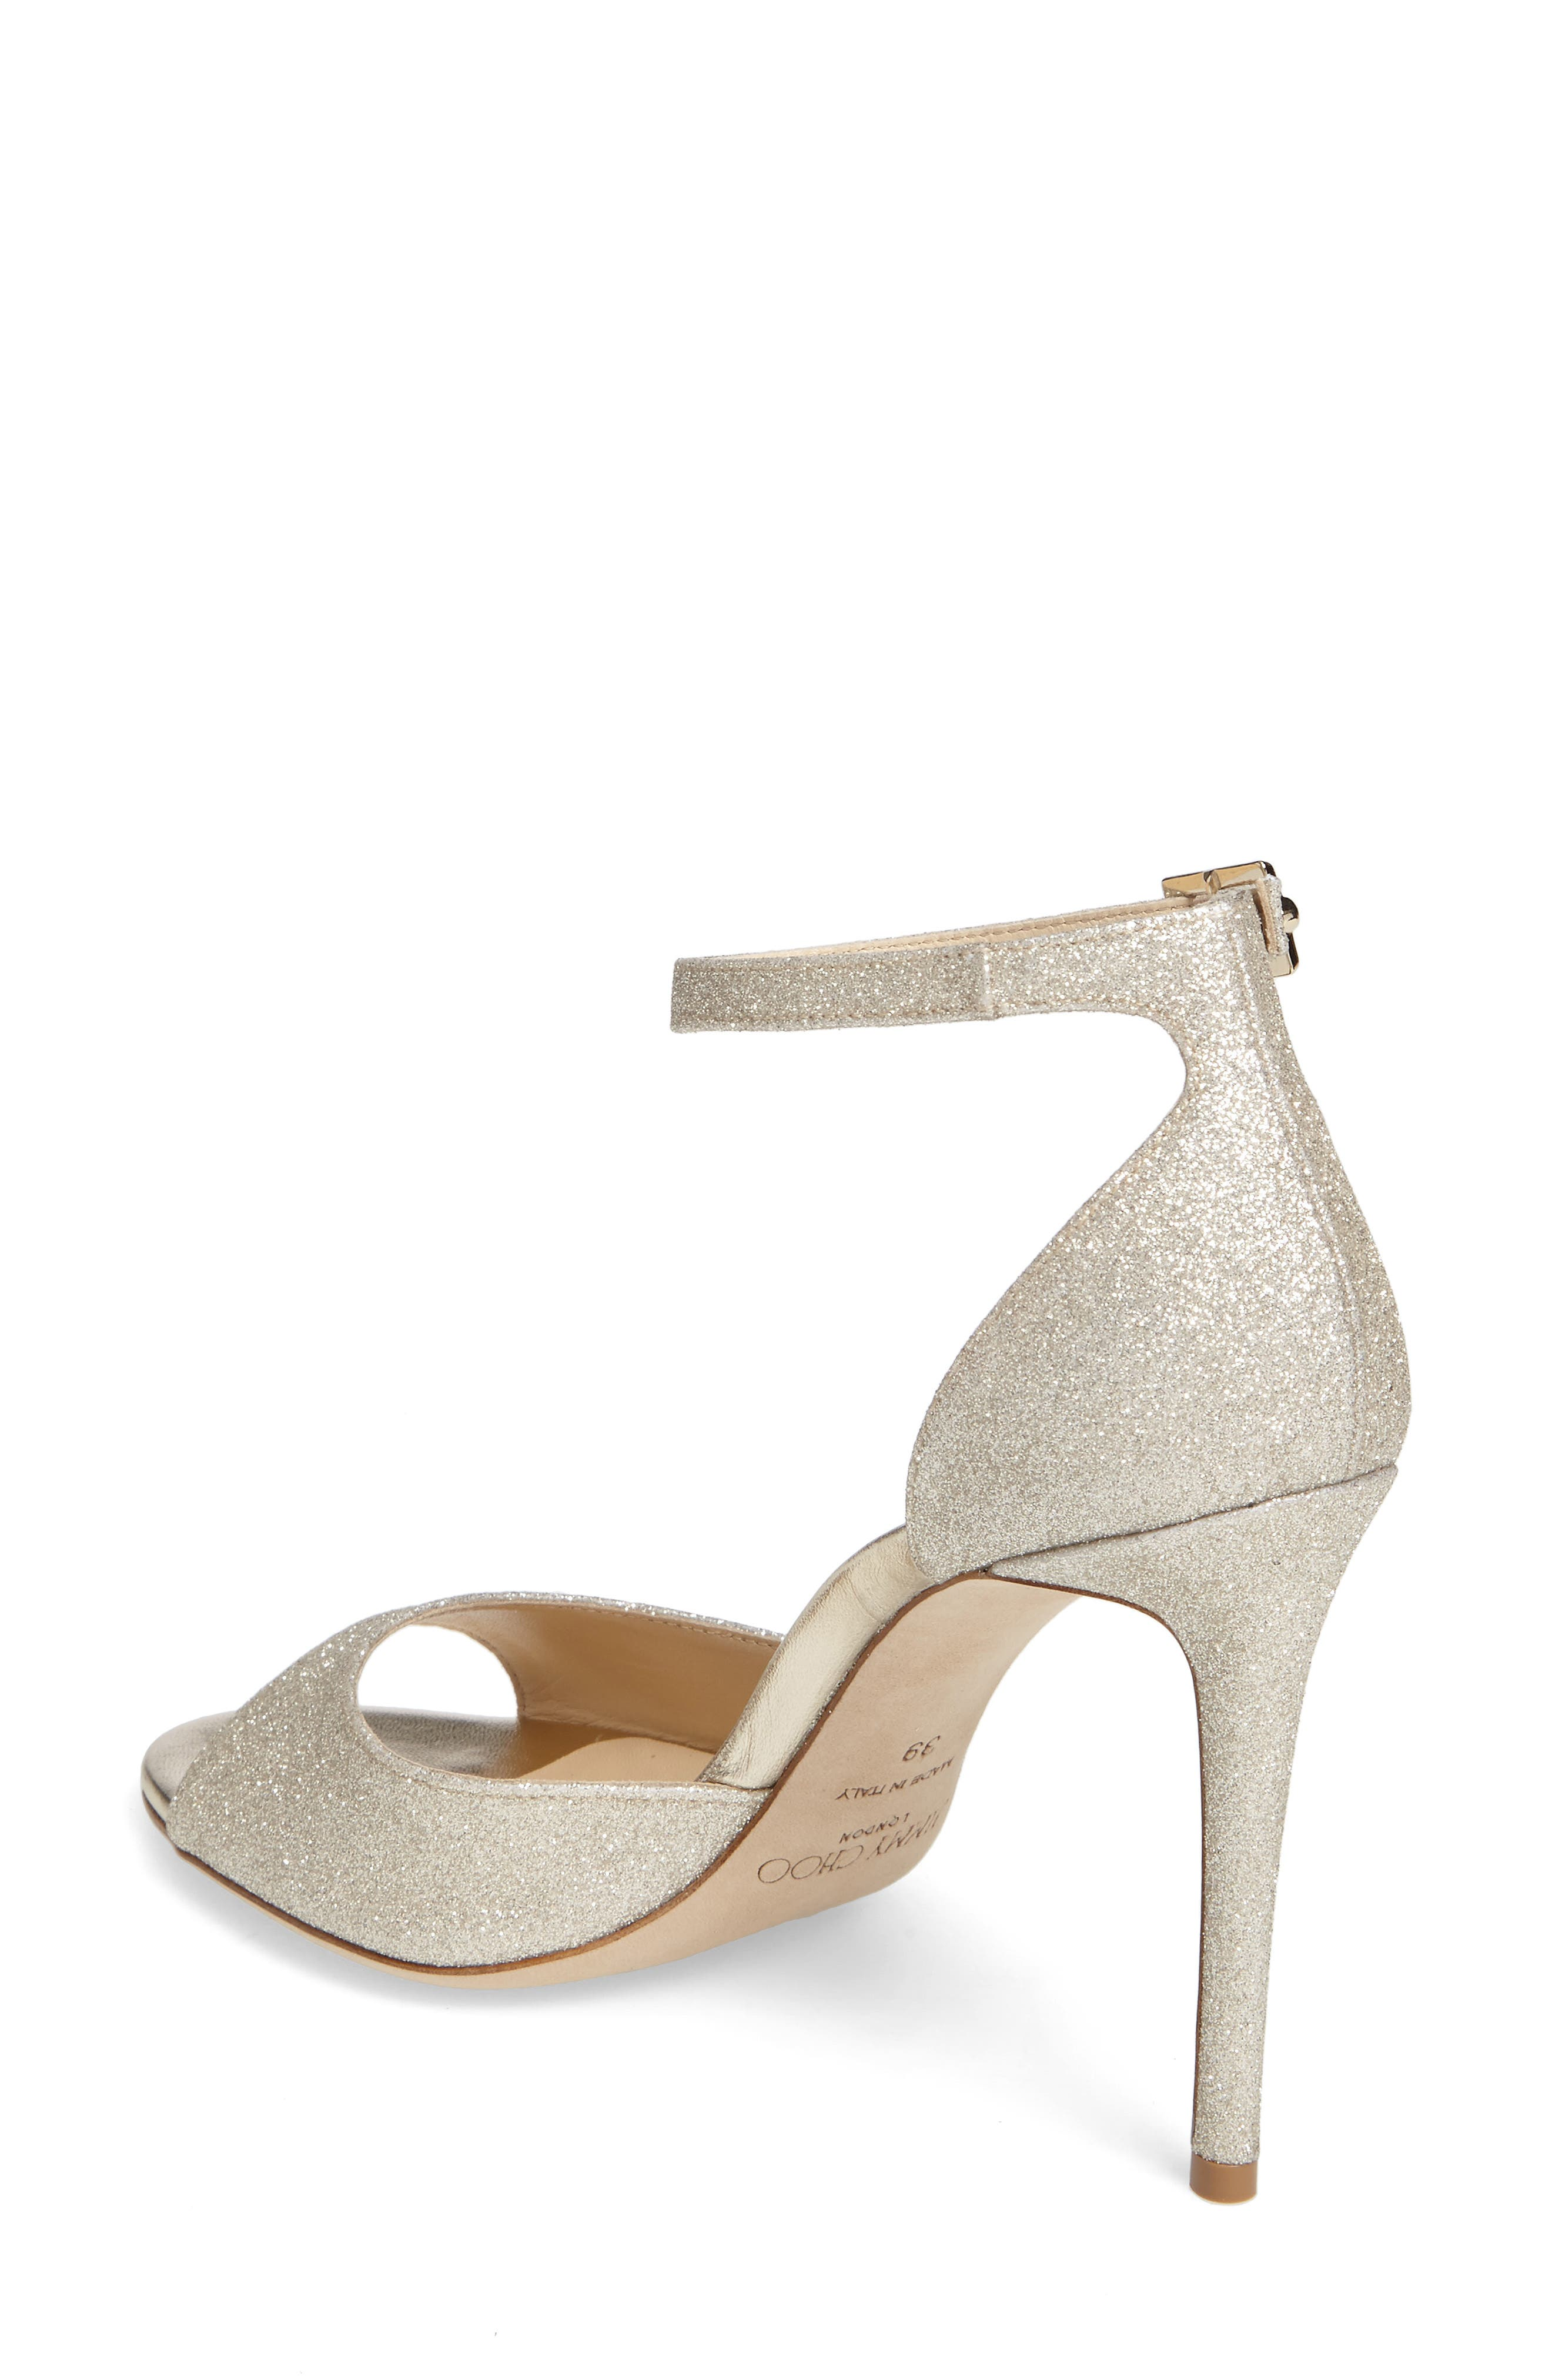 Annie Ankle Strap Sandal,                             Alternate thumbnail 2, color,                             PLATINUM